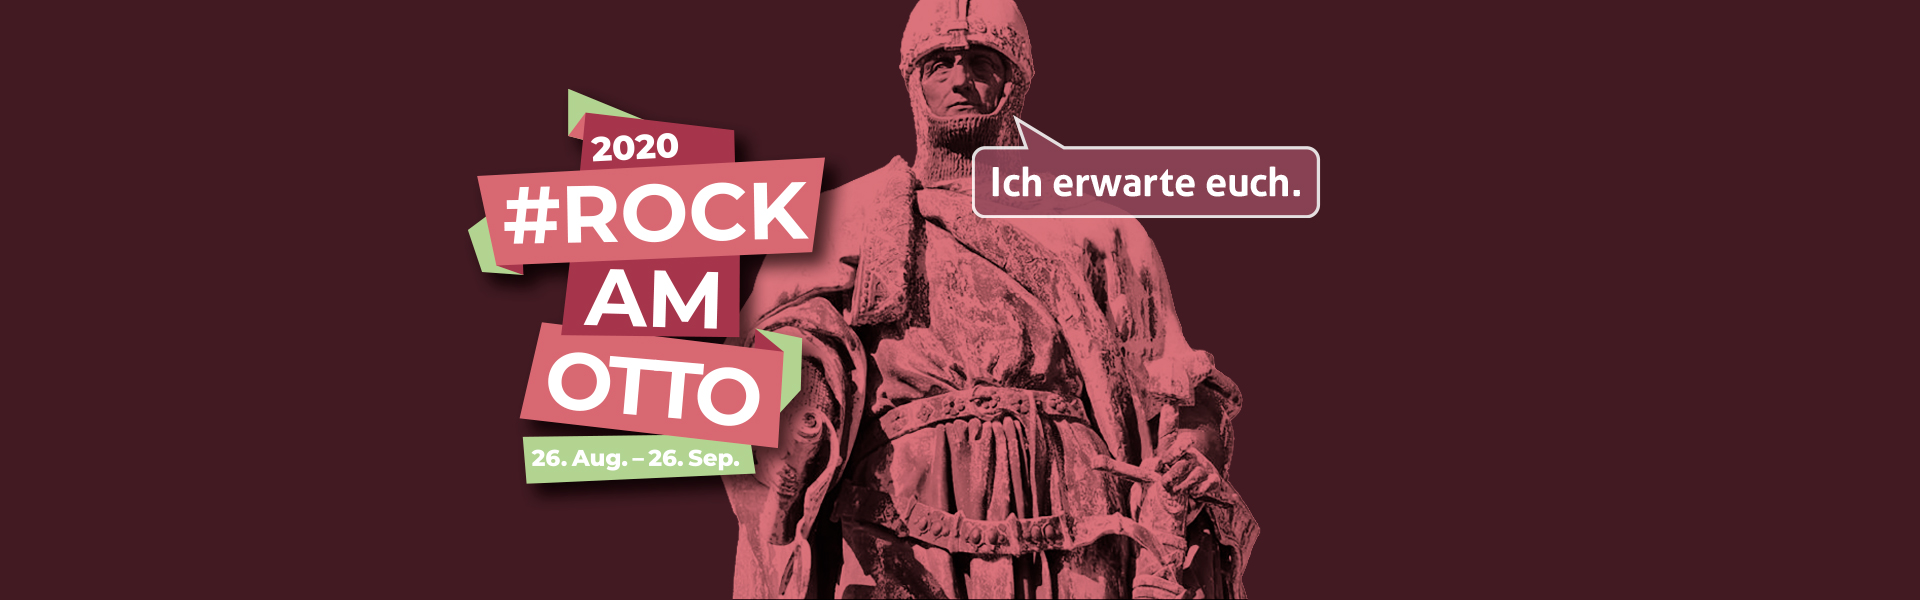 Headerbild-FG-Rock-am-Otto-1.jpg